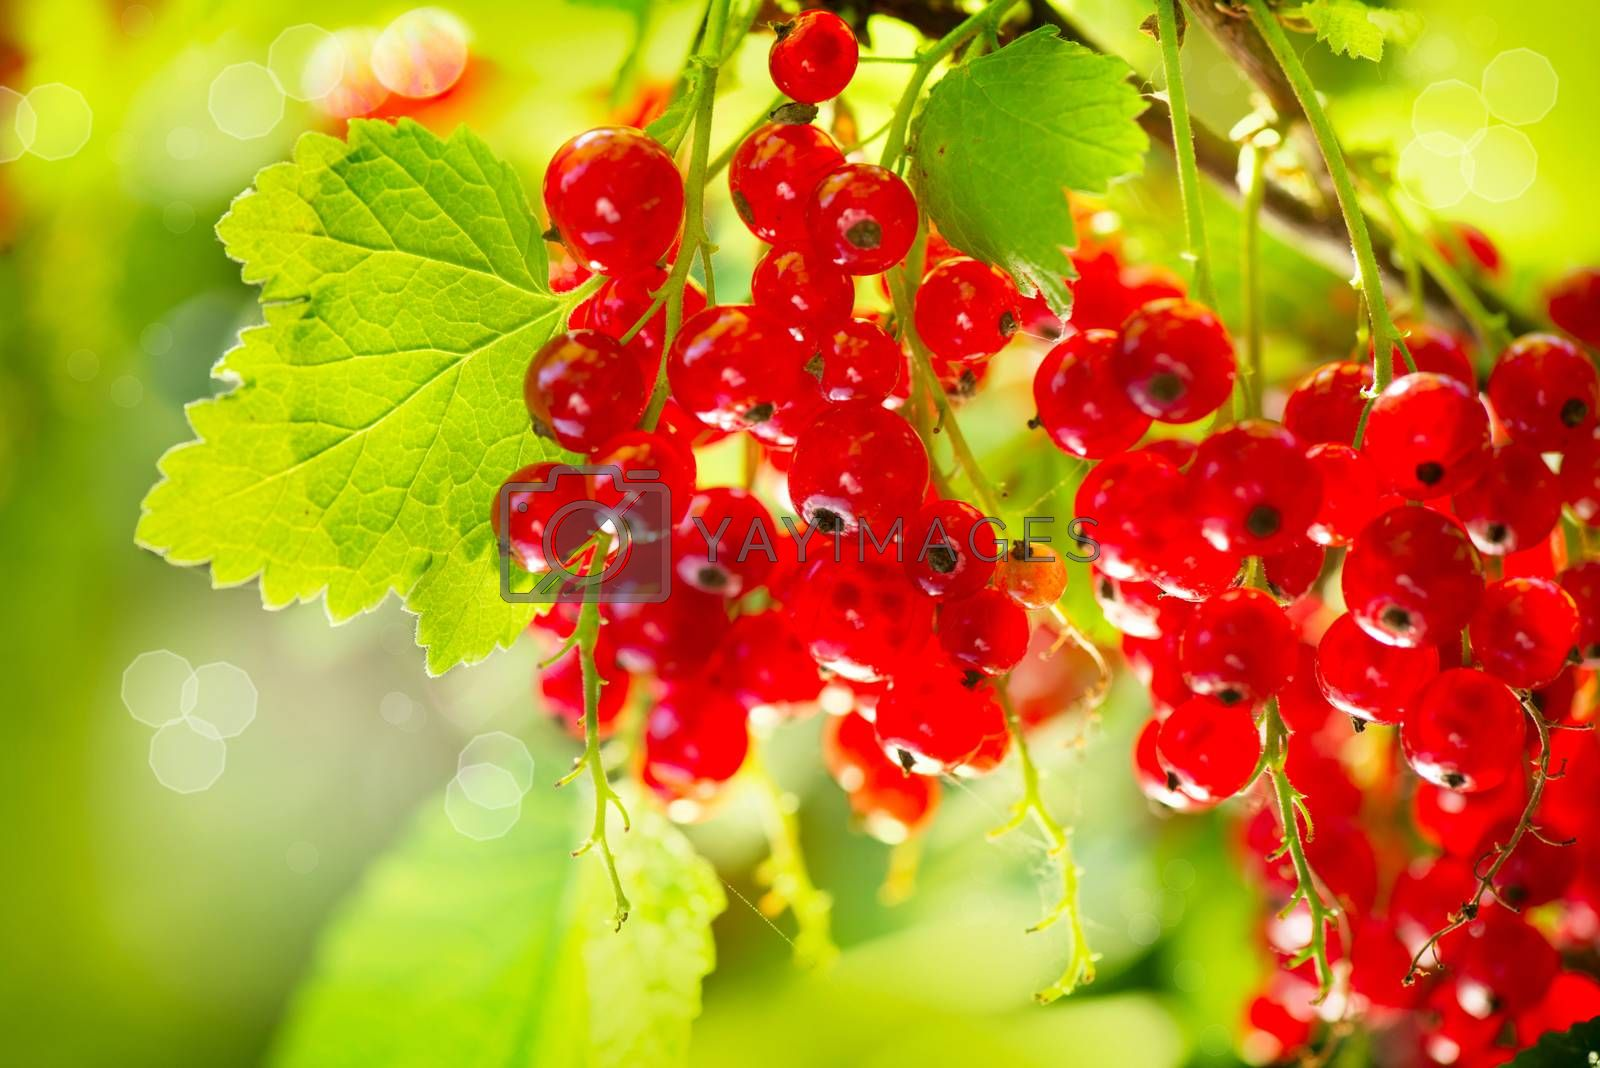 Red Currant. Ripe and Fresh Organic Redcurrant Berries by Subbotina Anna